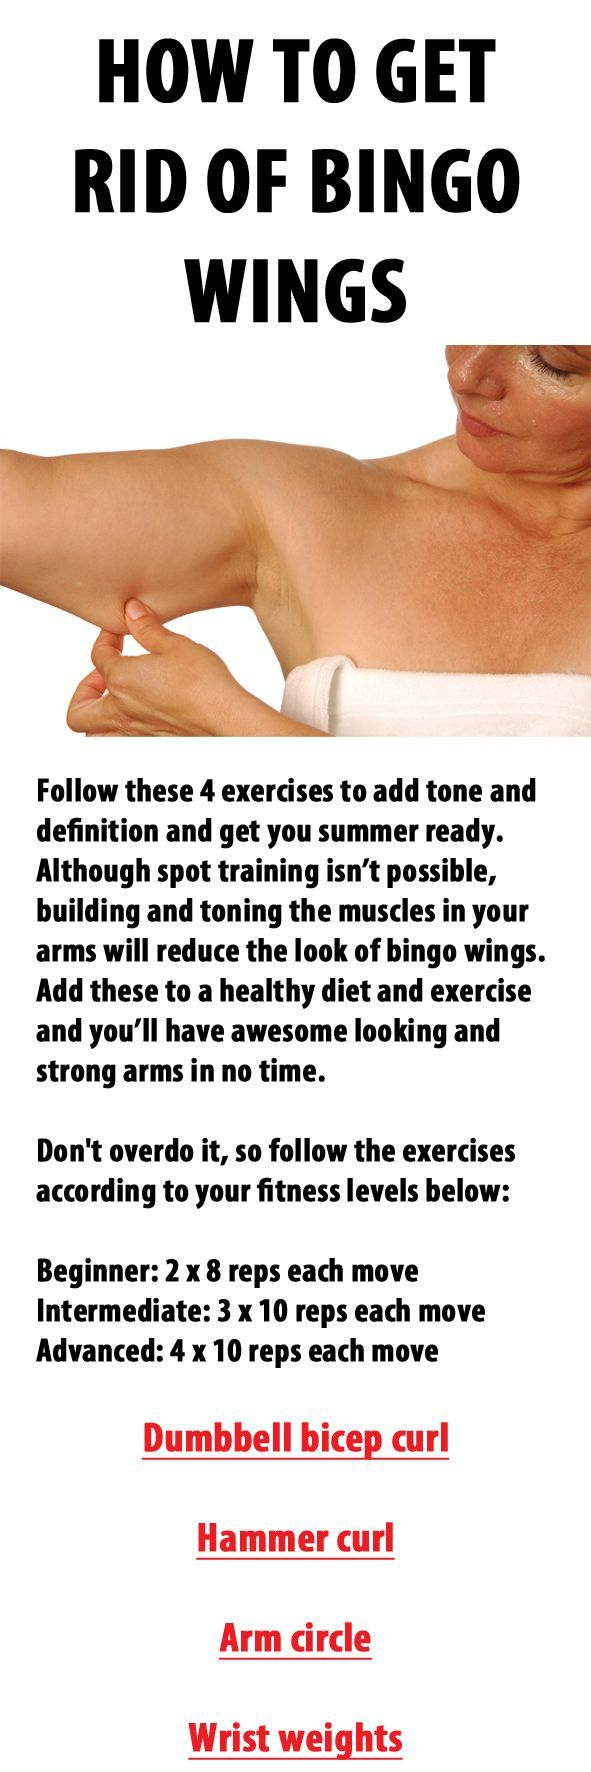 Sun's out, guns out; and it's time to banish those dreaded bingo wings…